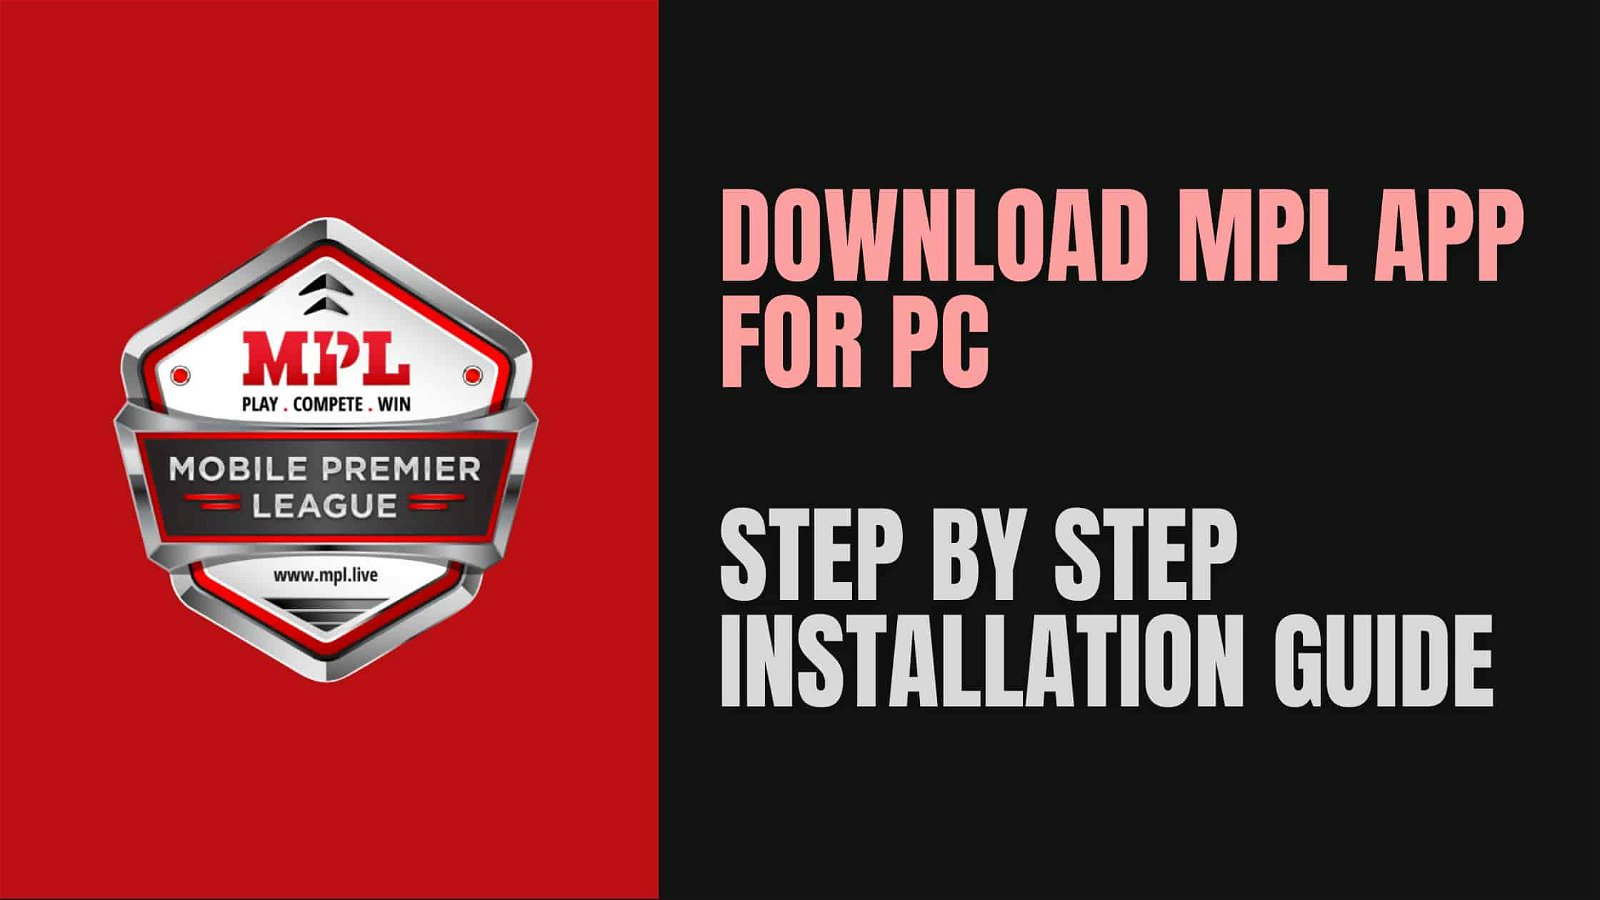 Download MPL App for PC